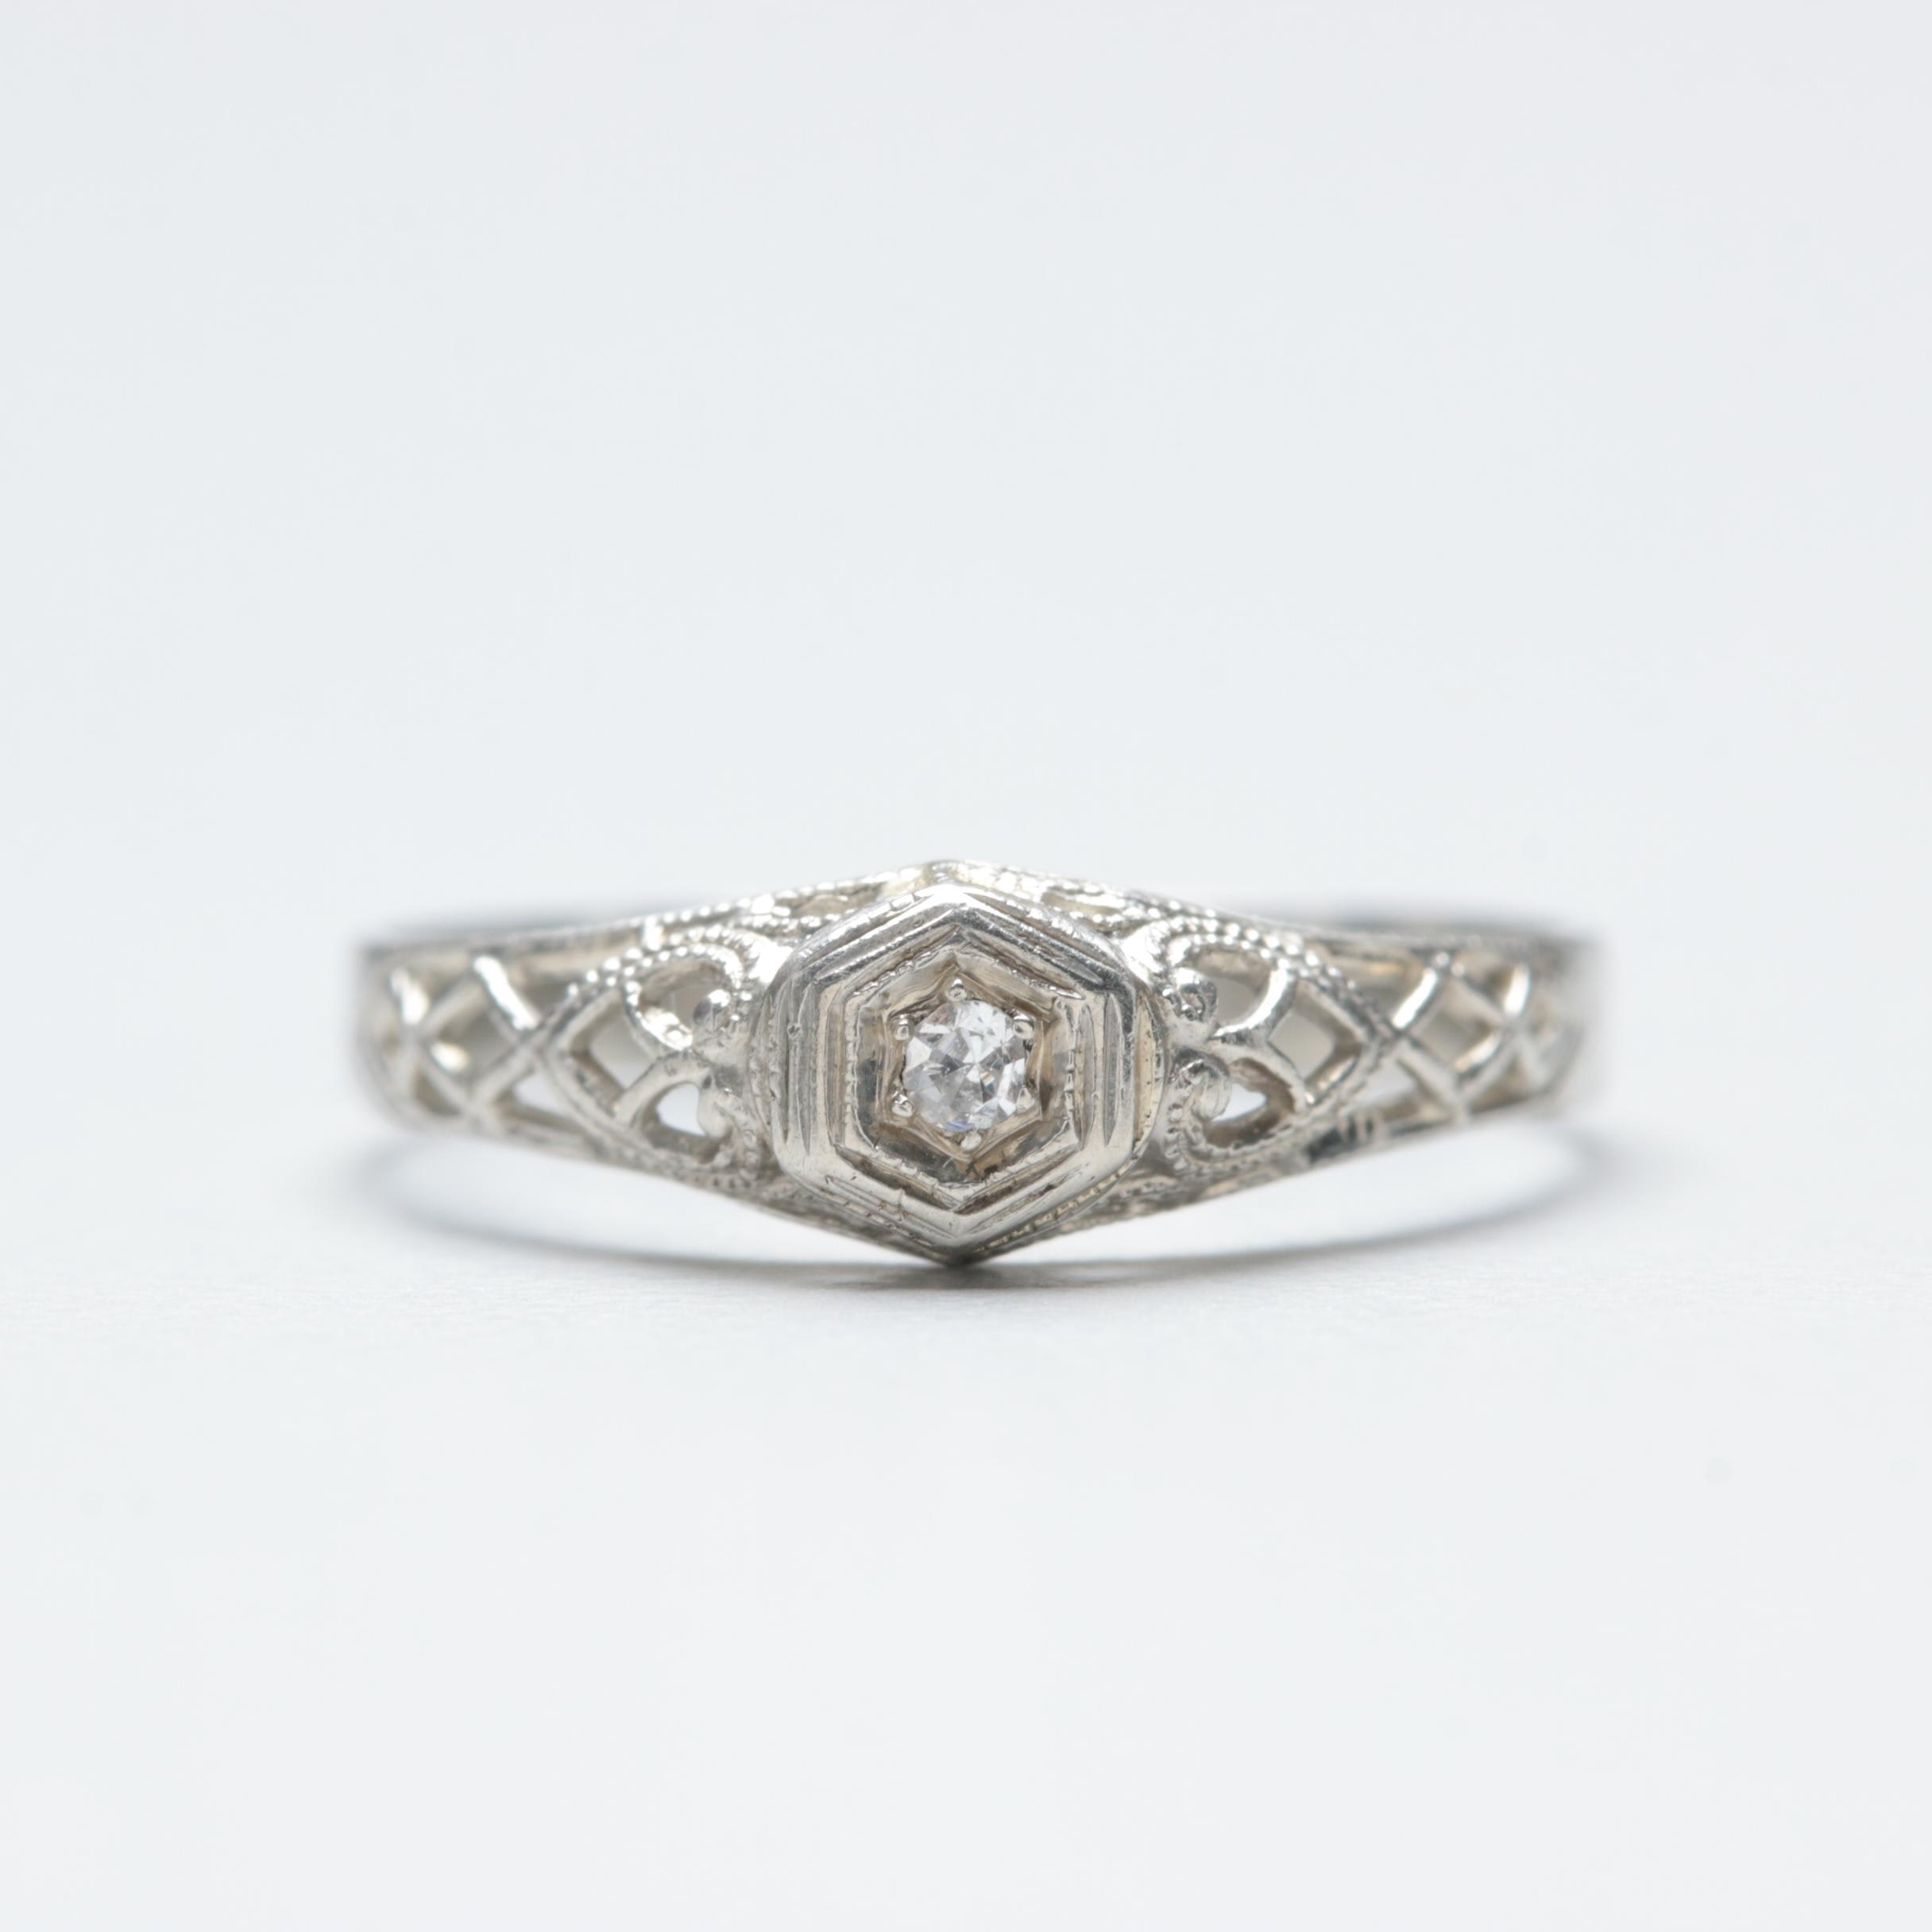 18K White Gold Diamond Solitaire Openwork Ring